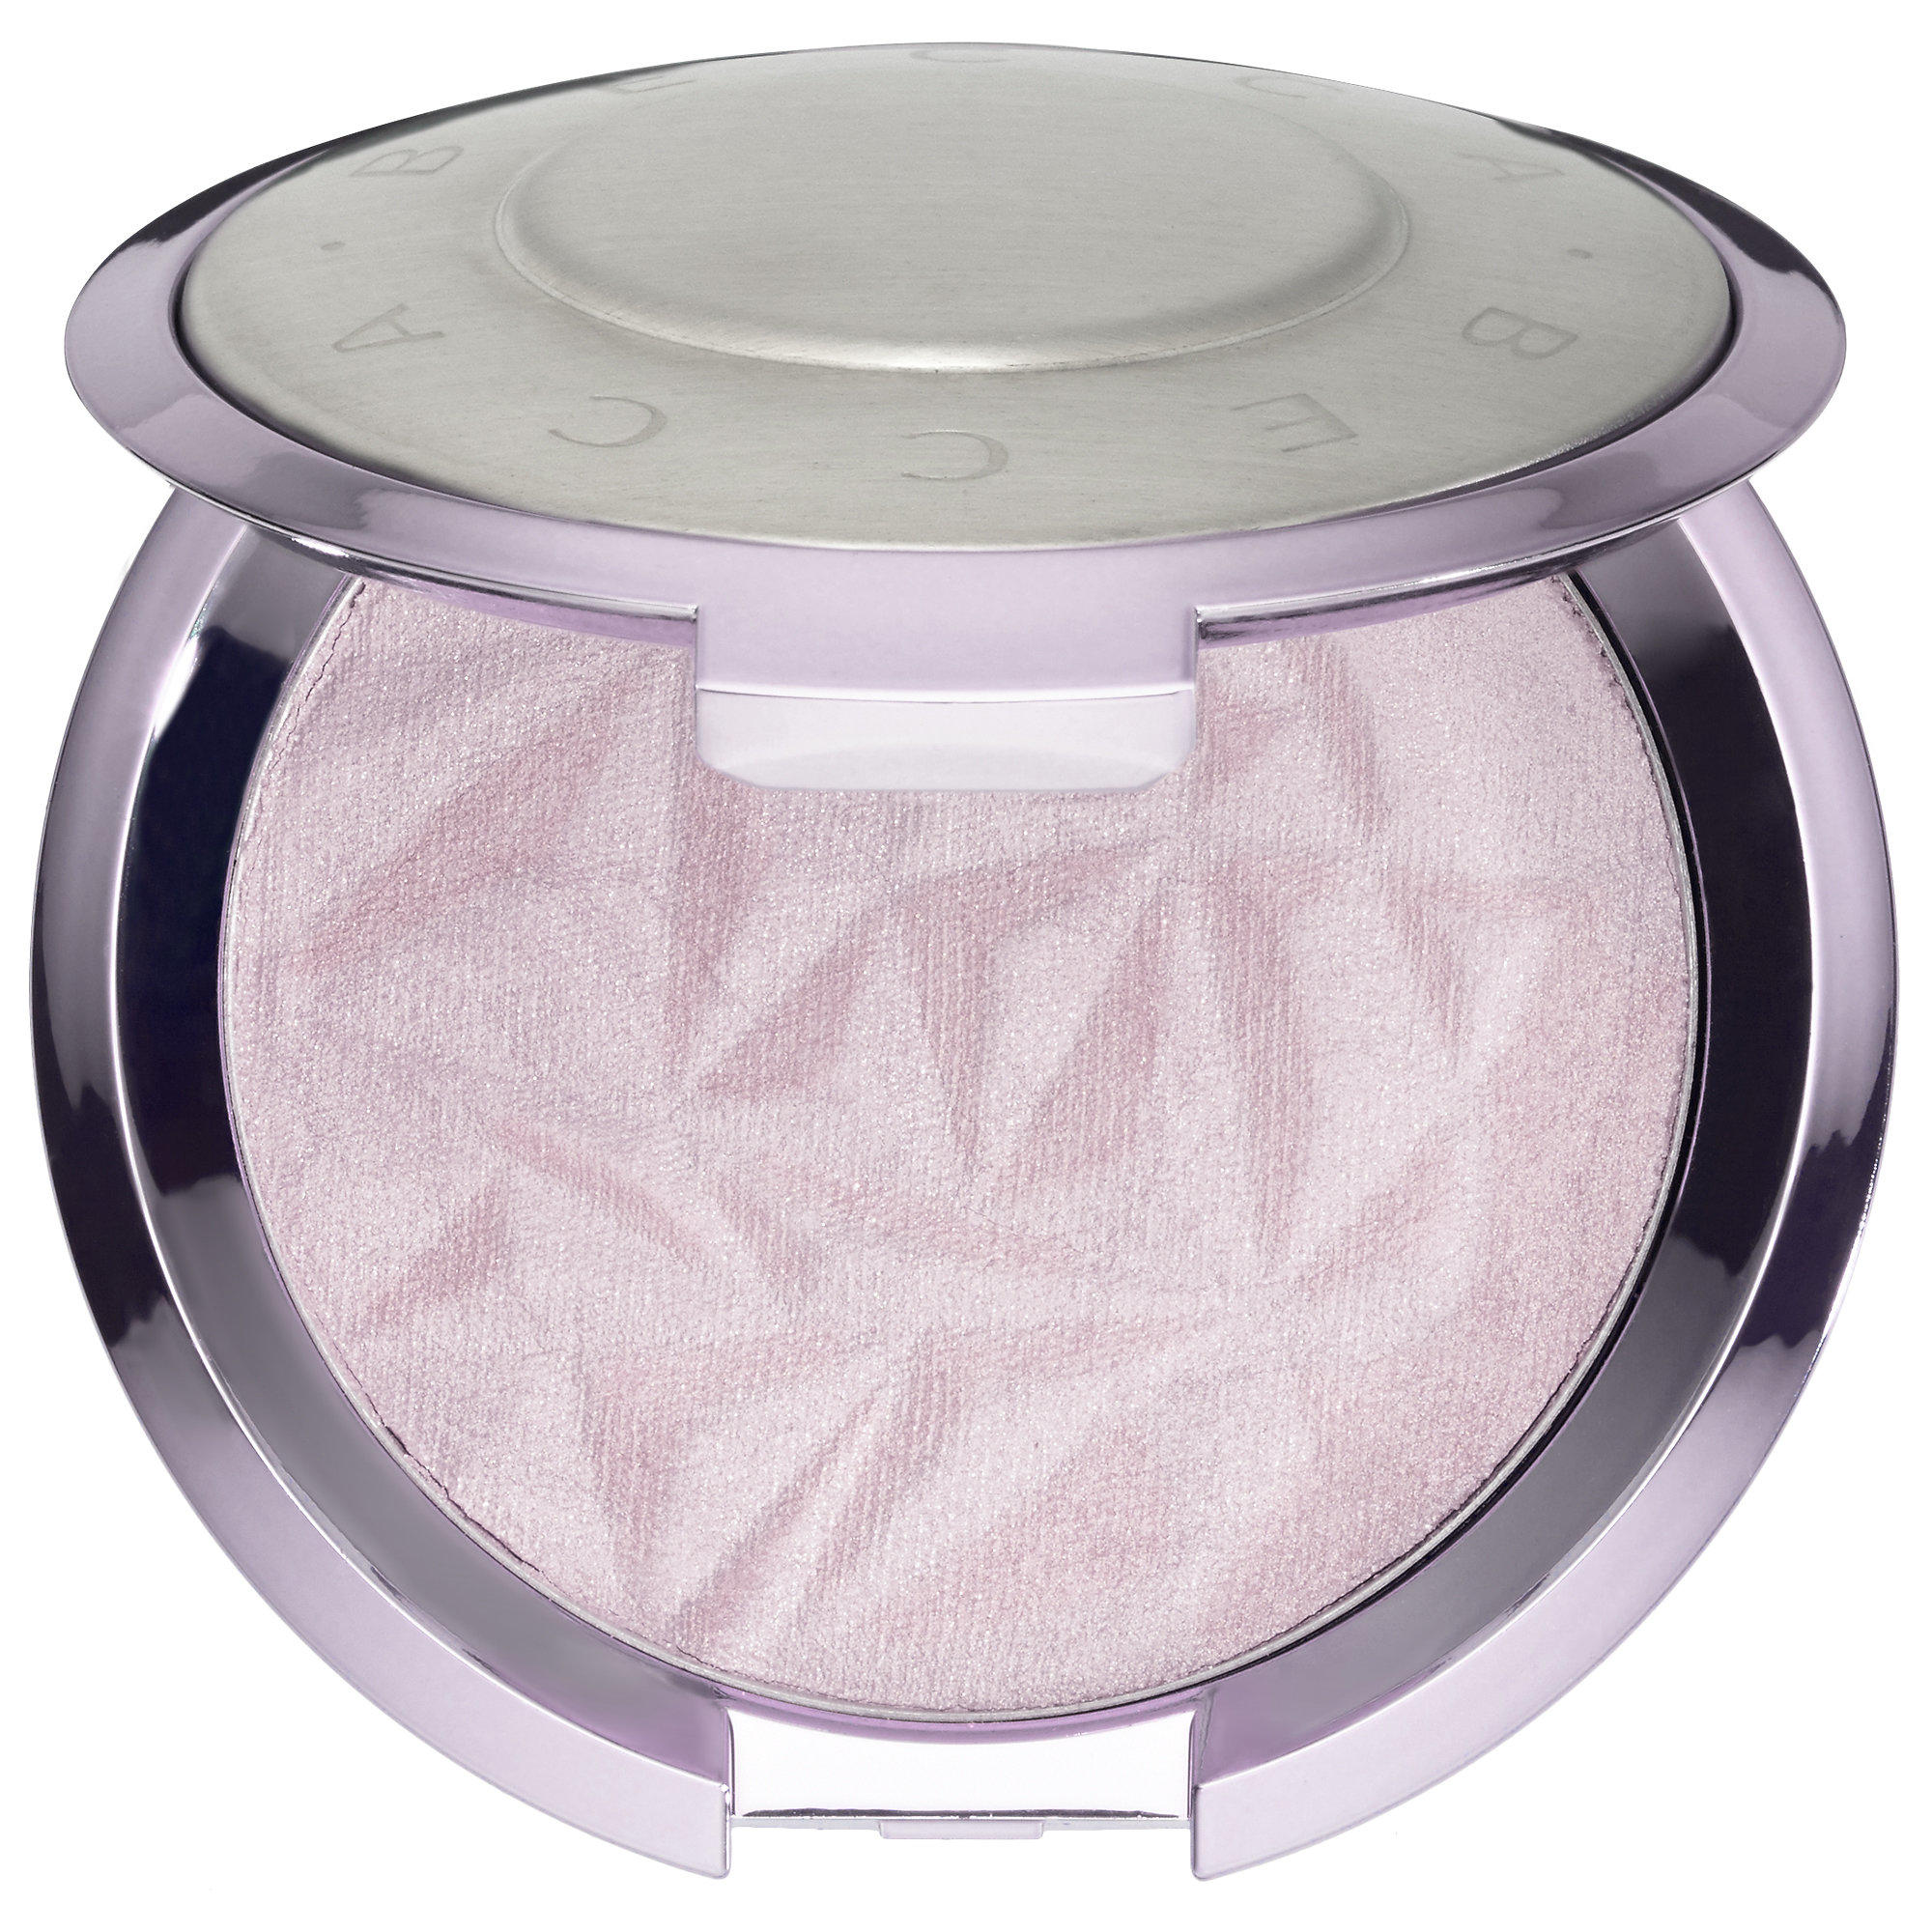 BECCA Shimmering Skin Perfector Pressed Prismatic Amethyst